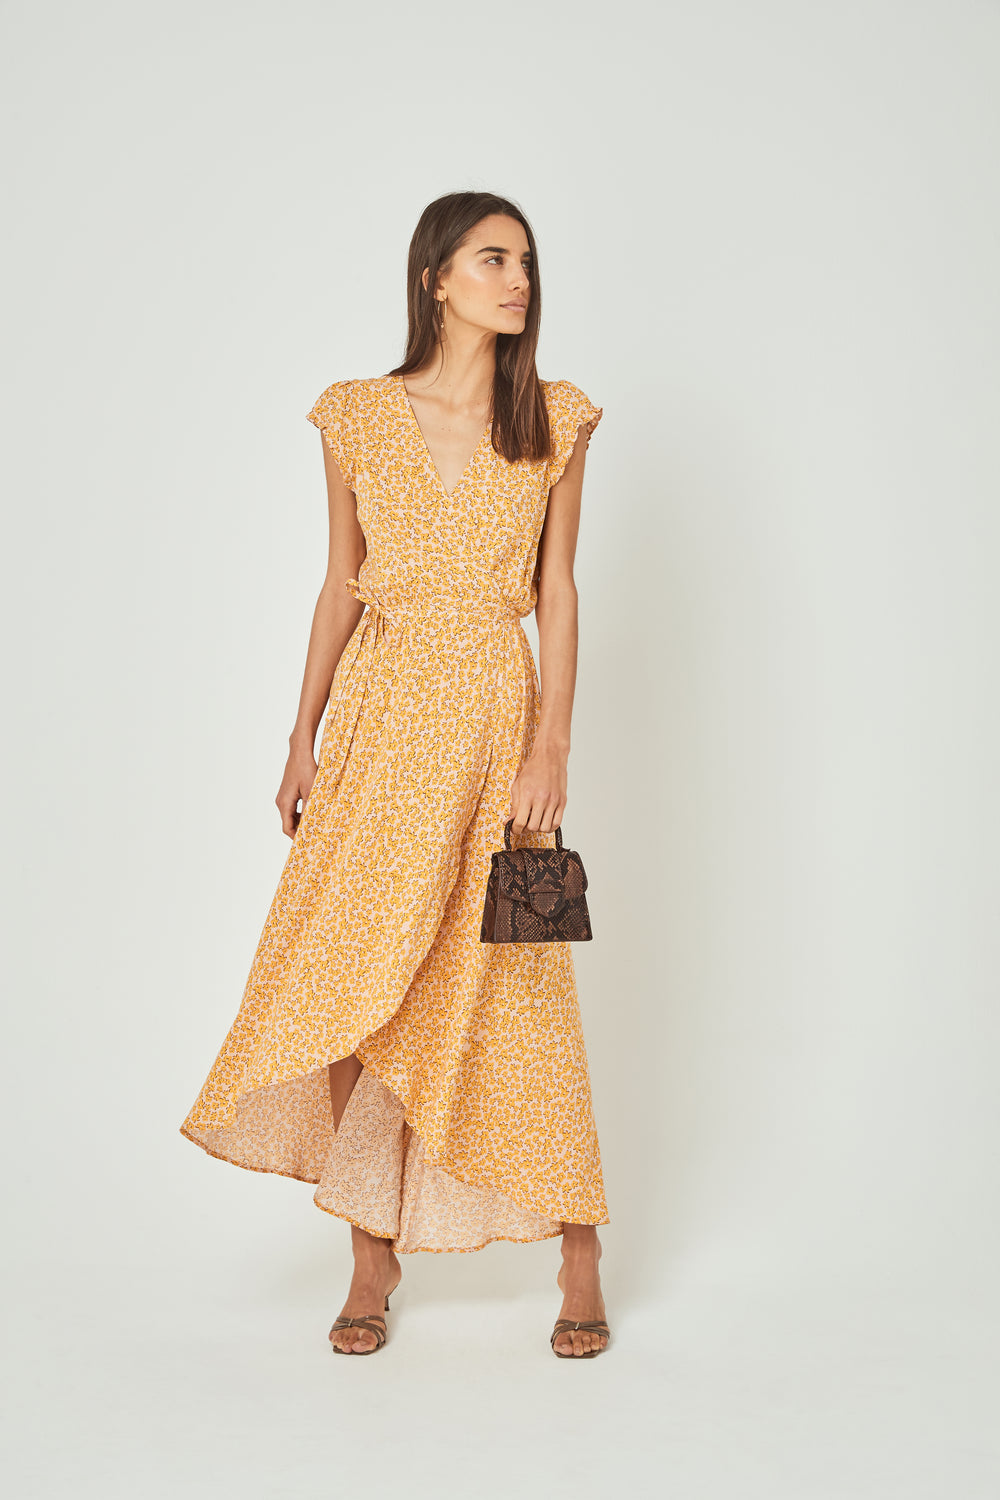 Showing the floaty fabric front view of the Auguste Dean Sierra Wrap Maxi Dress in Yellow